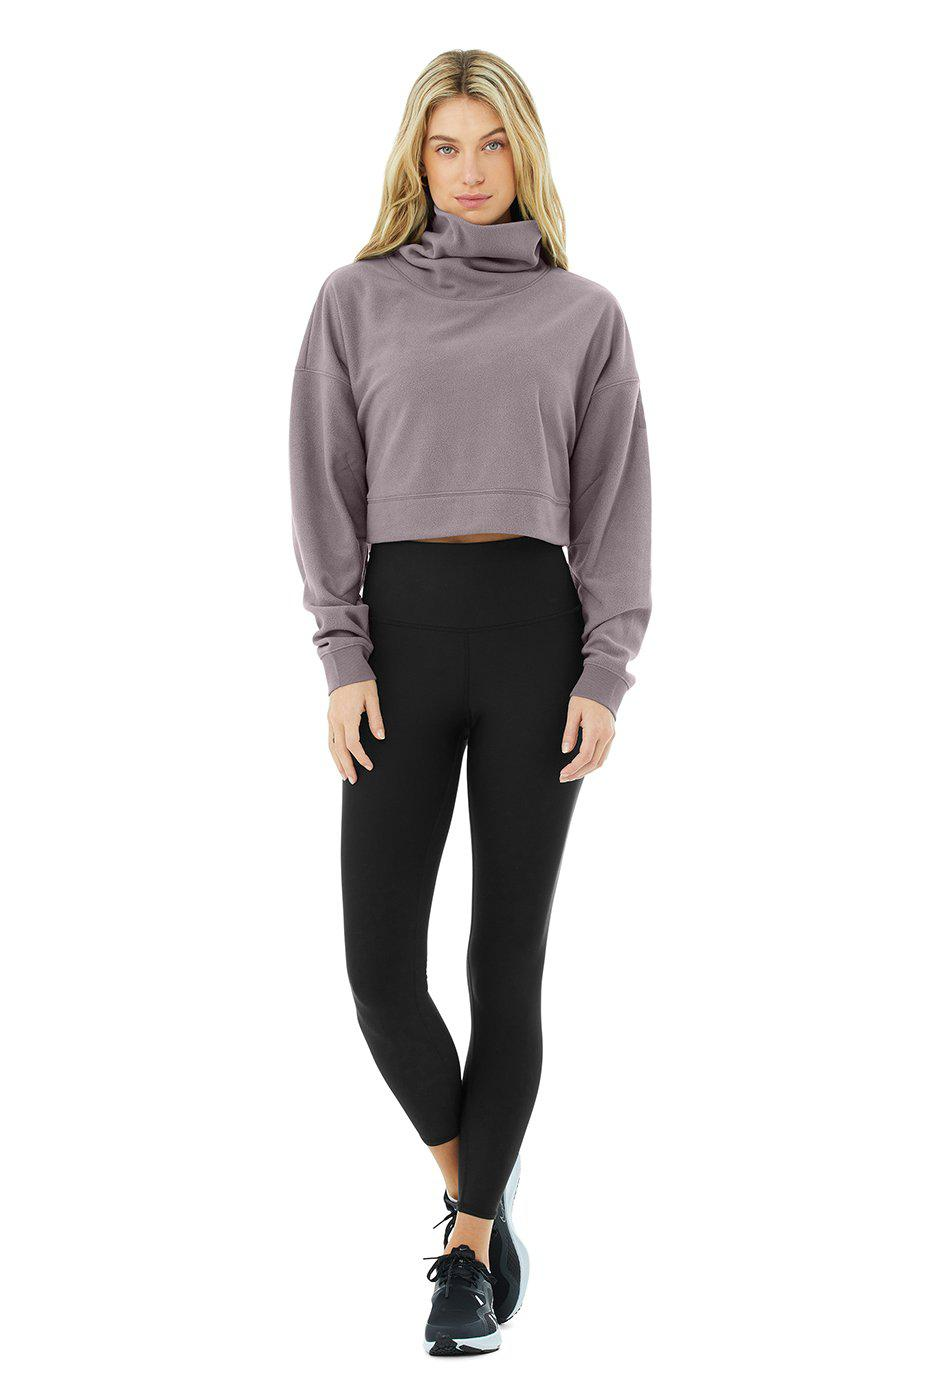 Cropped Warm Up Pullover - Purple Dusk 3